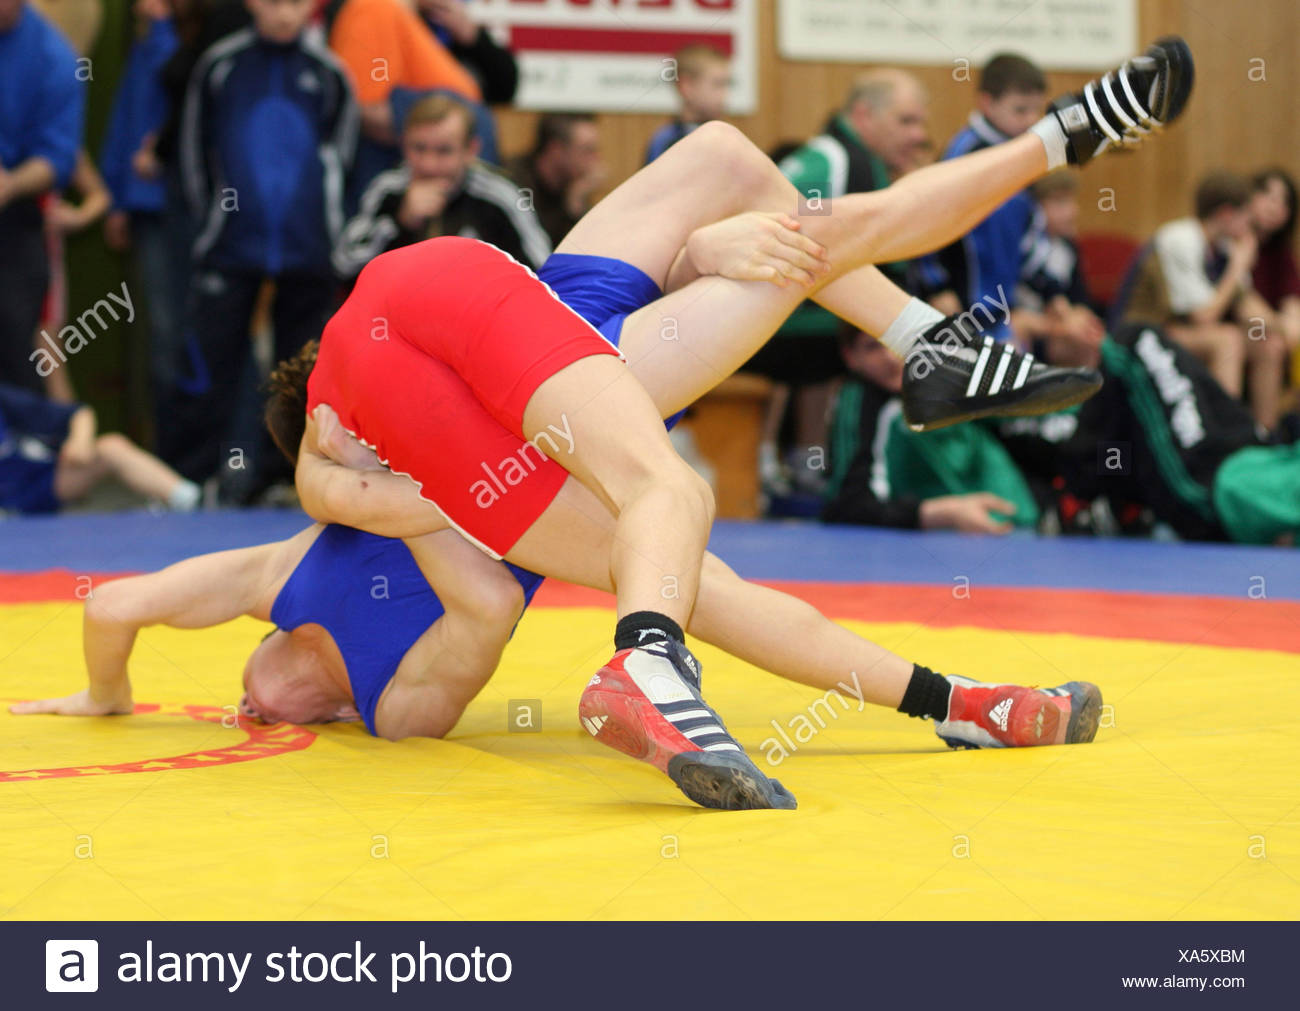 Wrestlers during a match - Stock Image